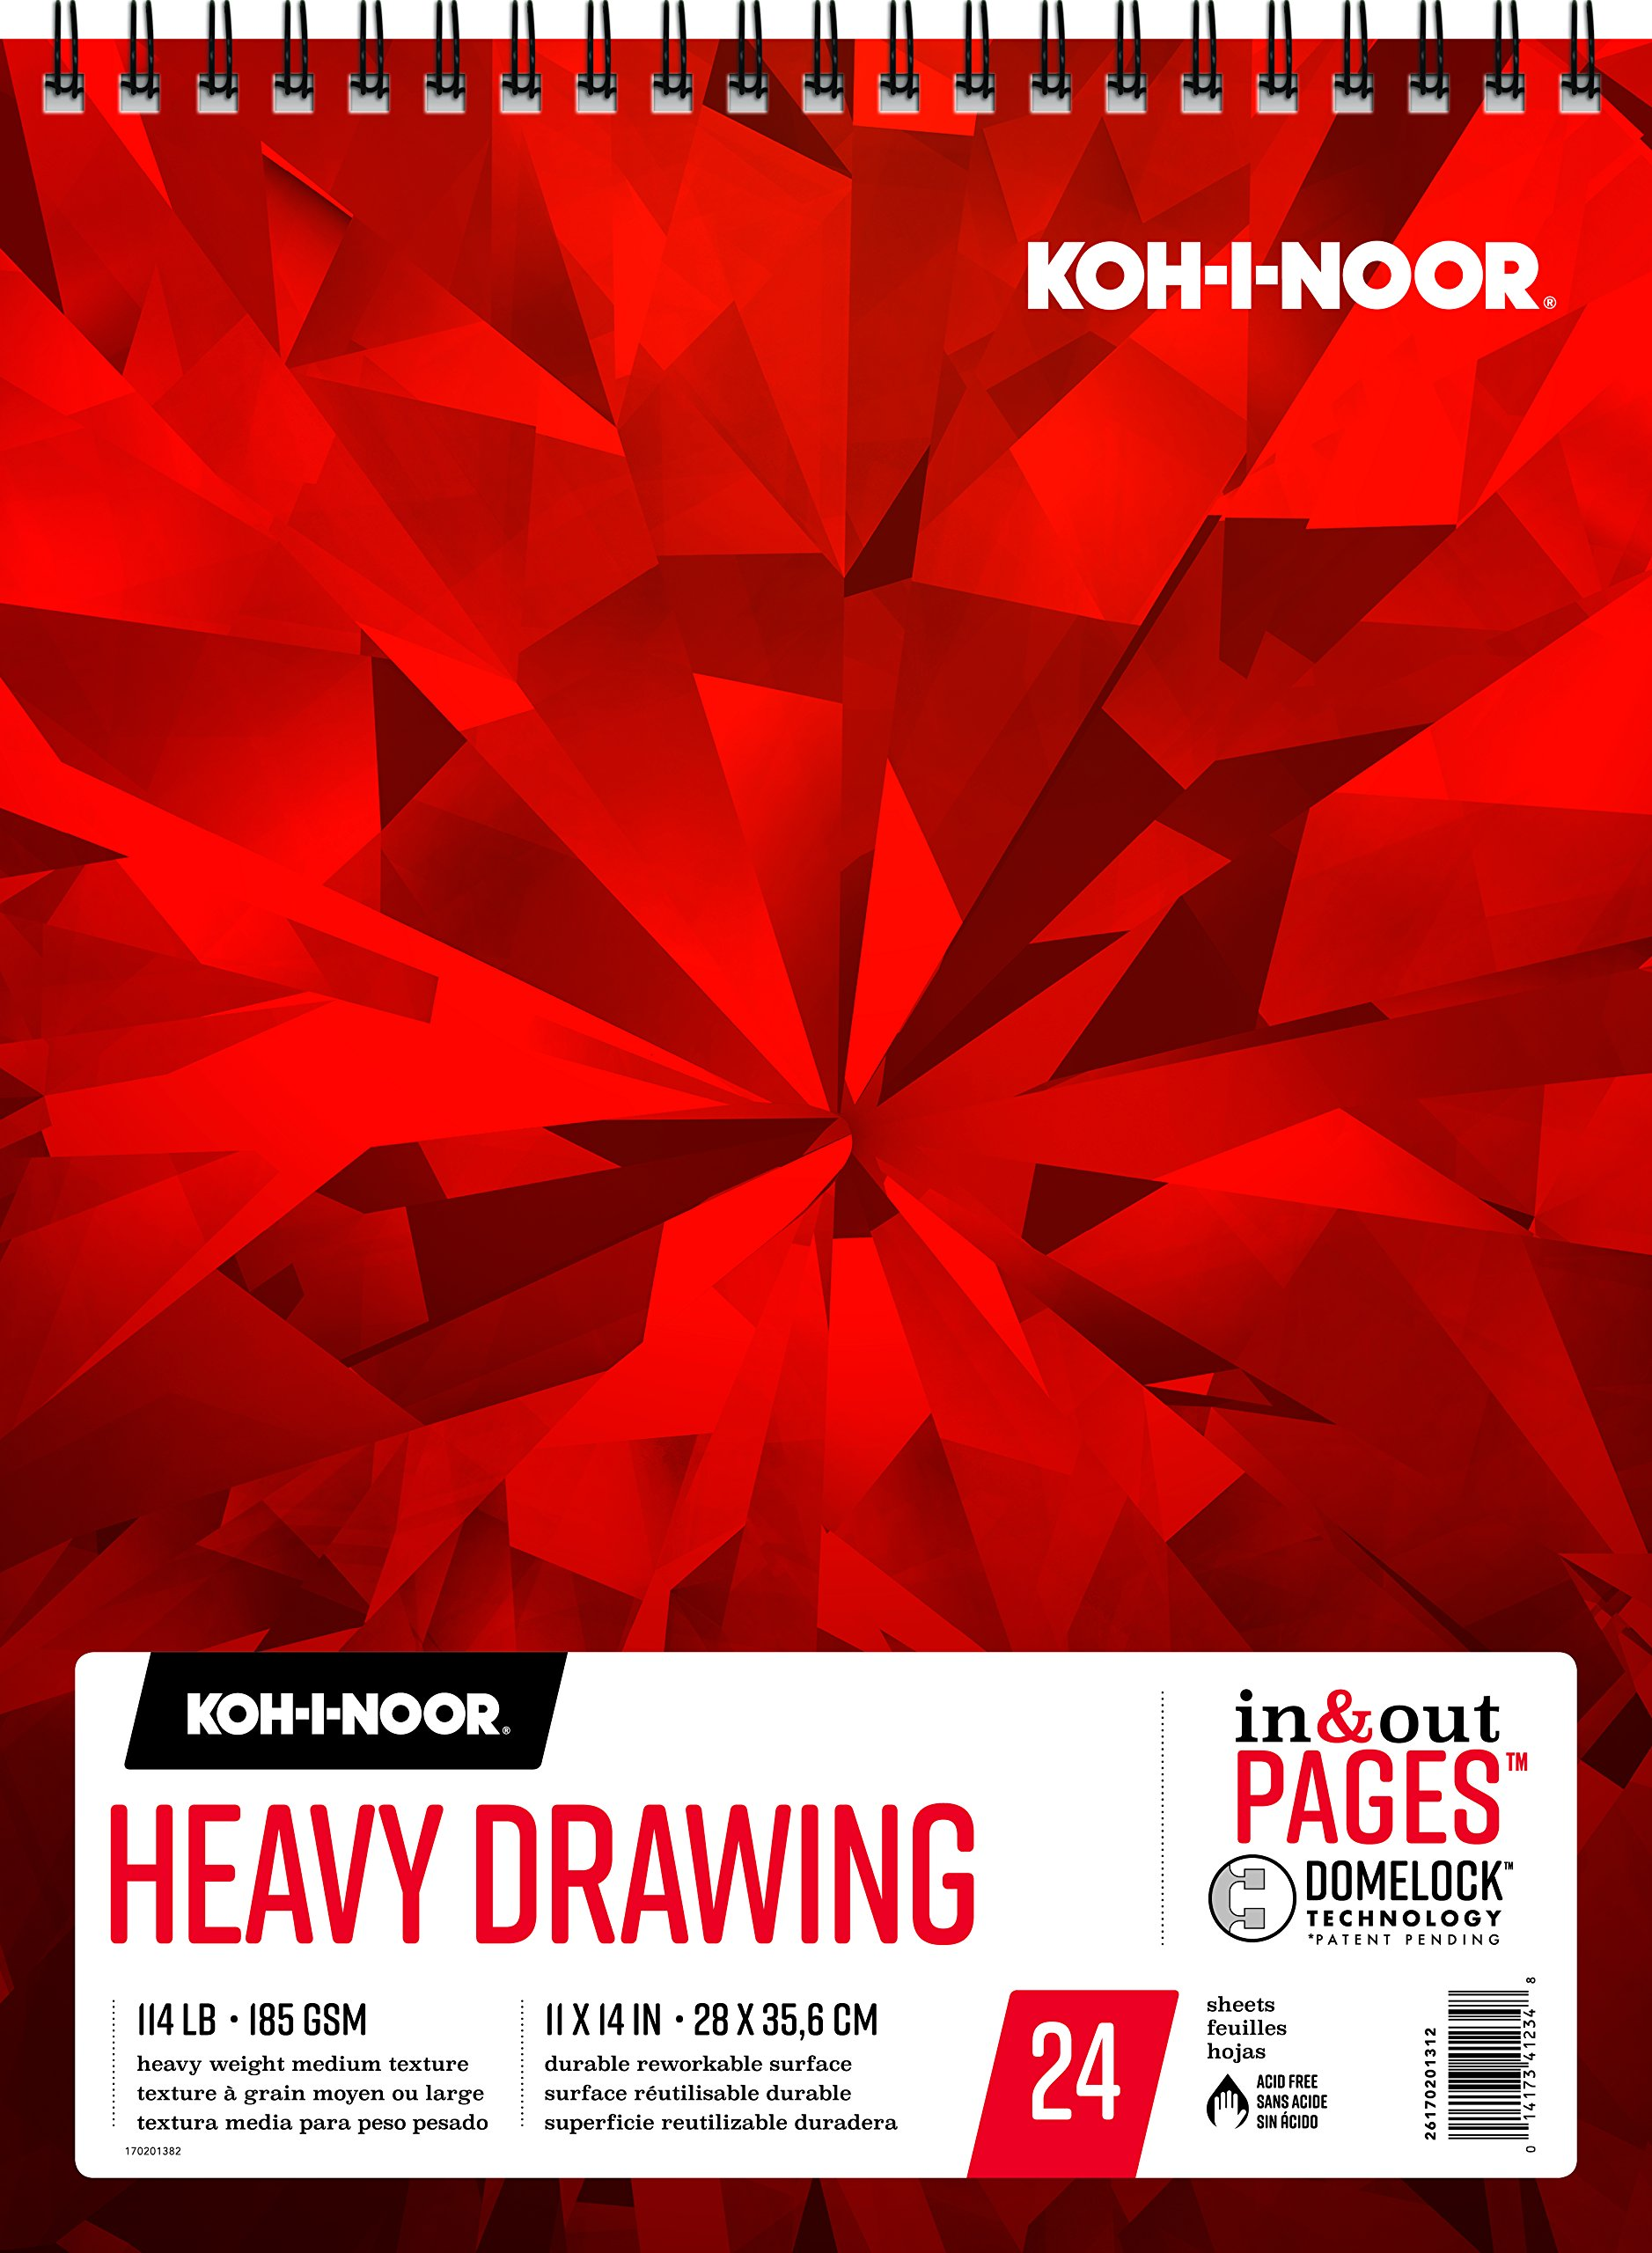 Koh-I-Noor Heavy Drawing White Paper Pad with In and Out Pages, 90lb/147 GSM, 11 x 14'', Top Wire-Bound, 24 Sheets per Pad (26170201312)